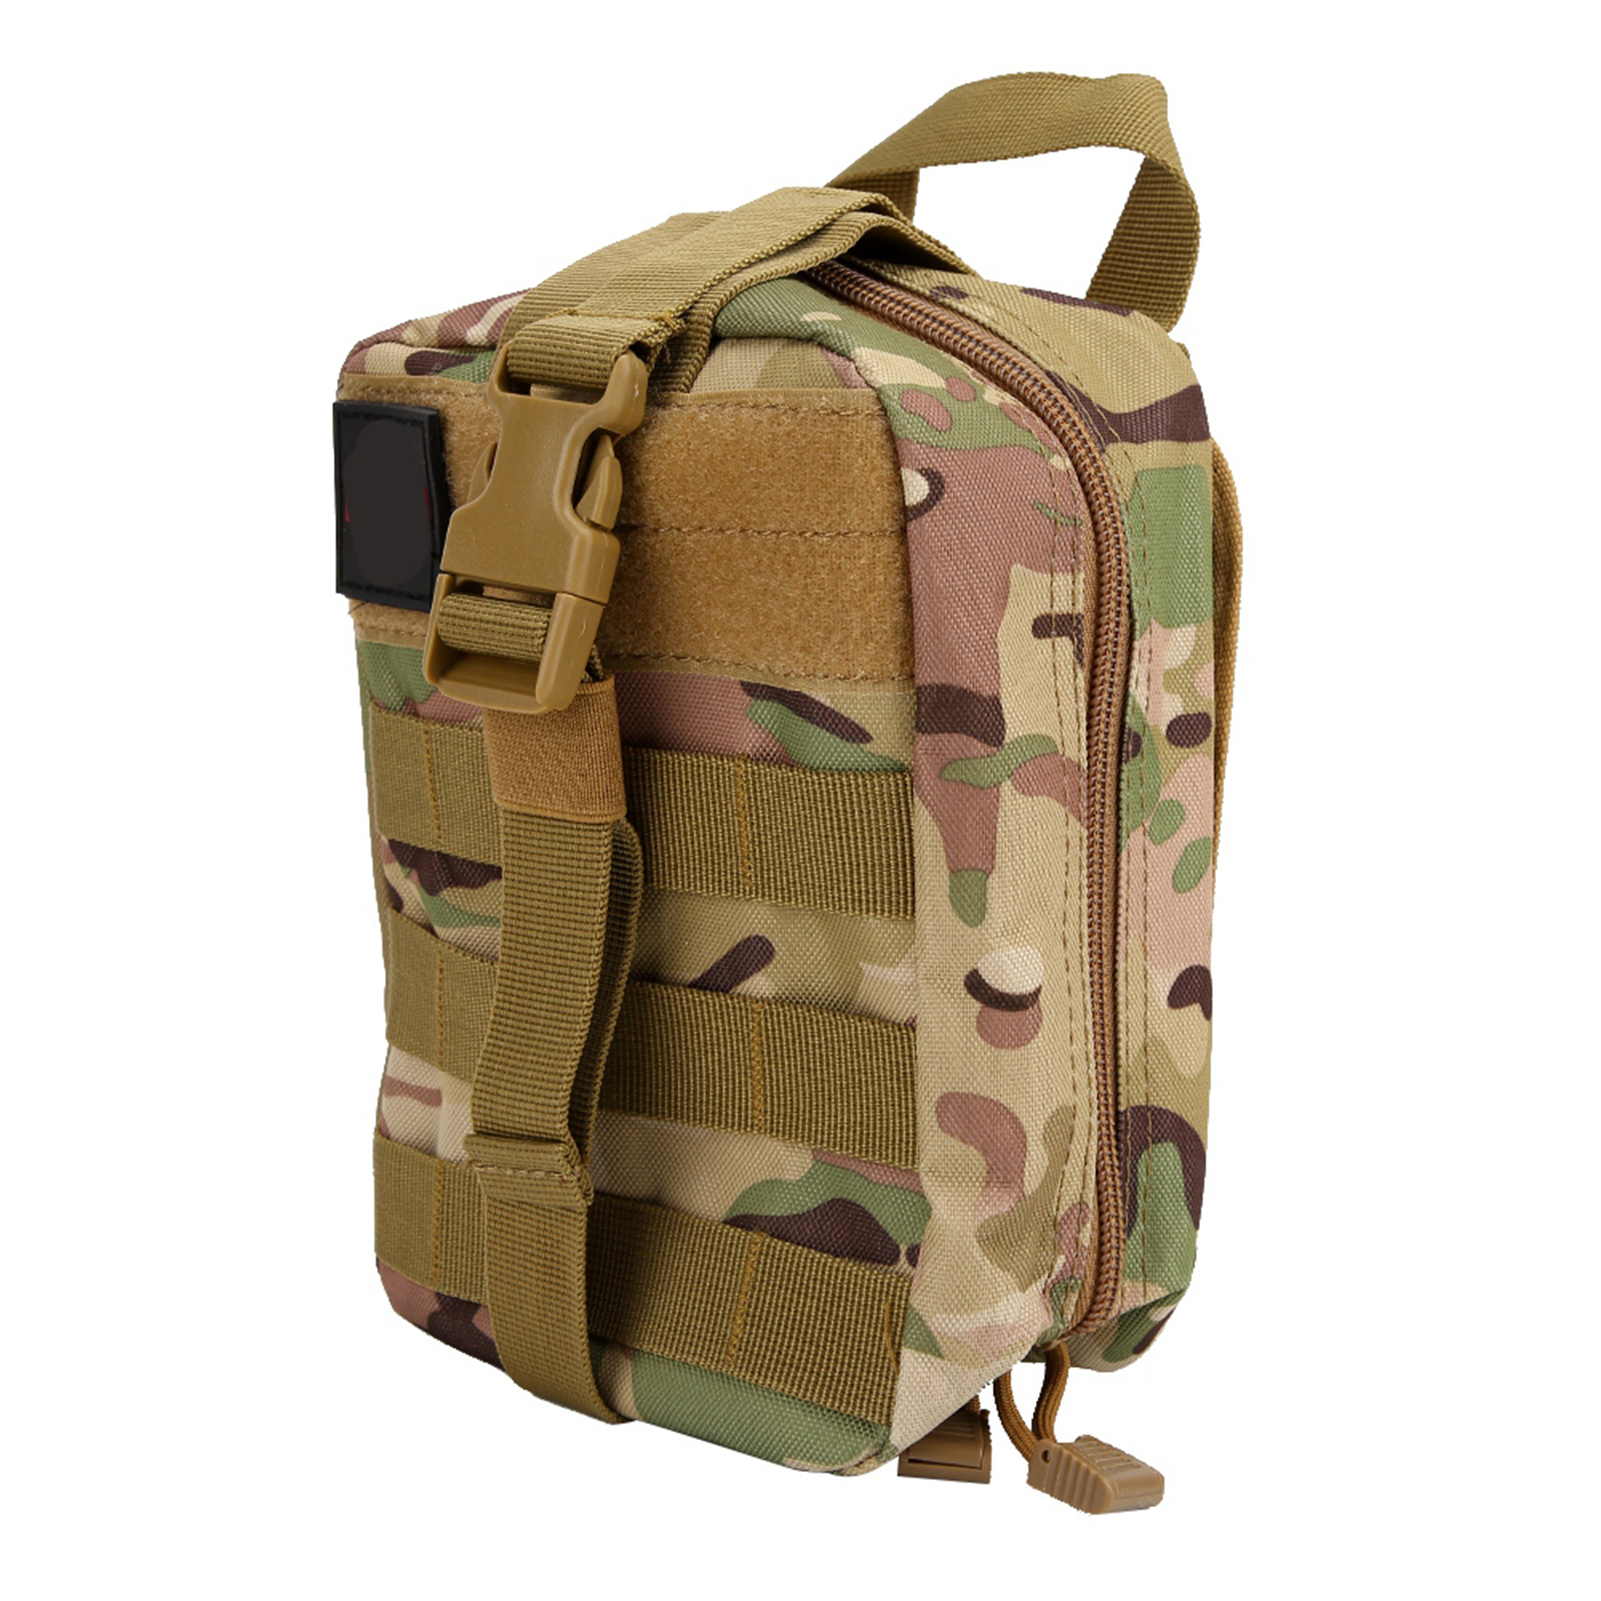 Details about Tactical First Aid Kit Survival Molle EMT Pouch Bag IFAK  Medical Waterproof Hot